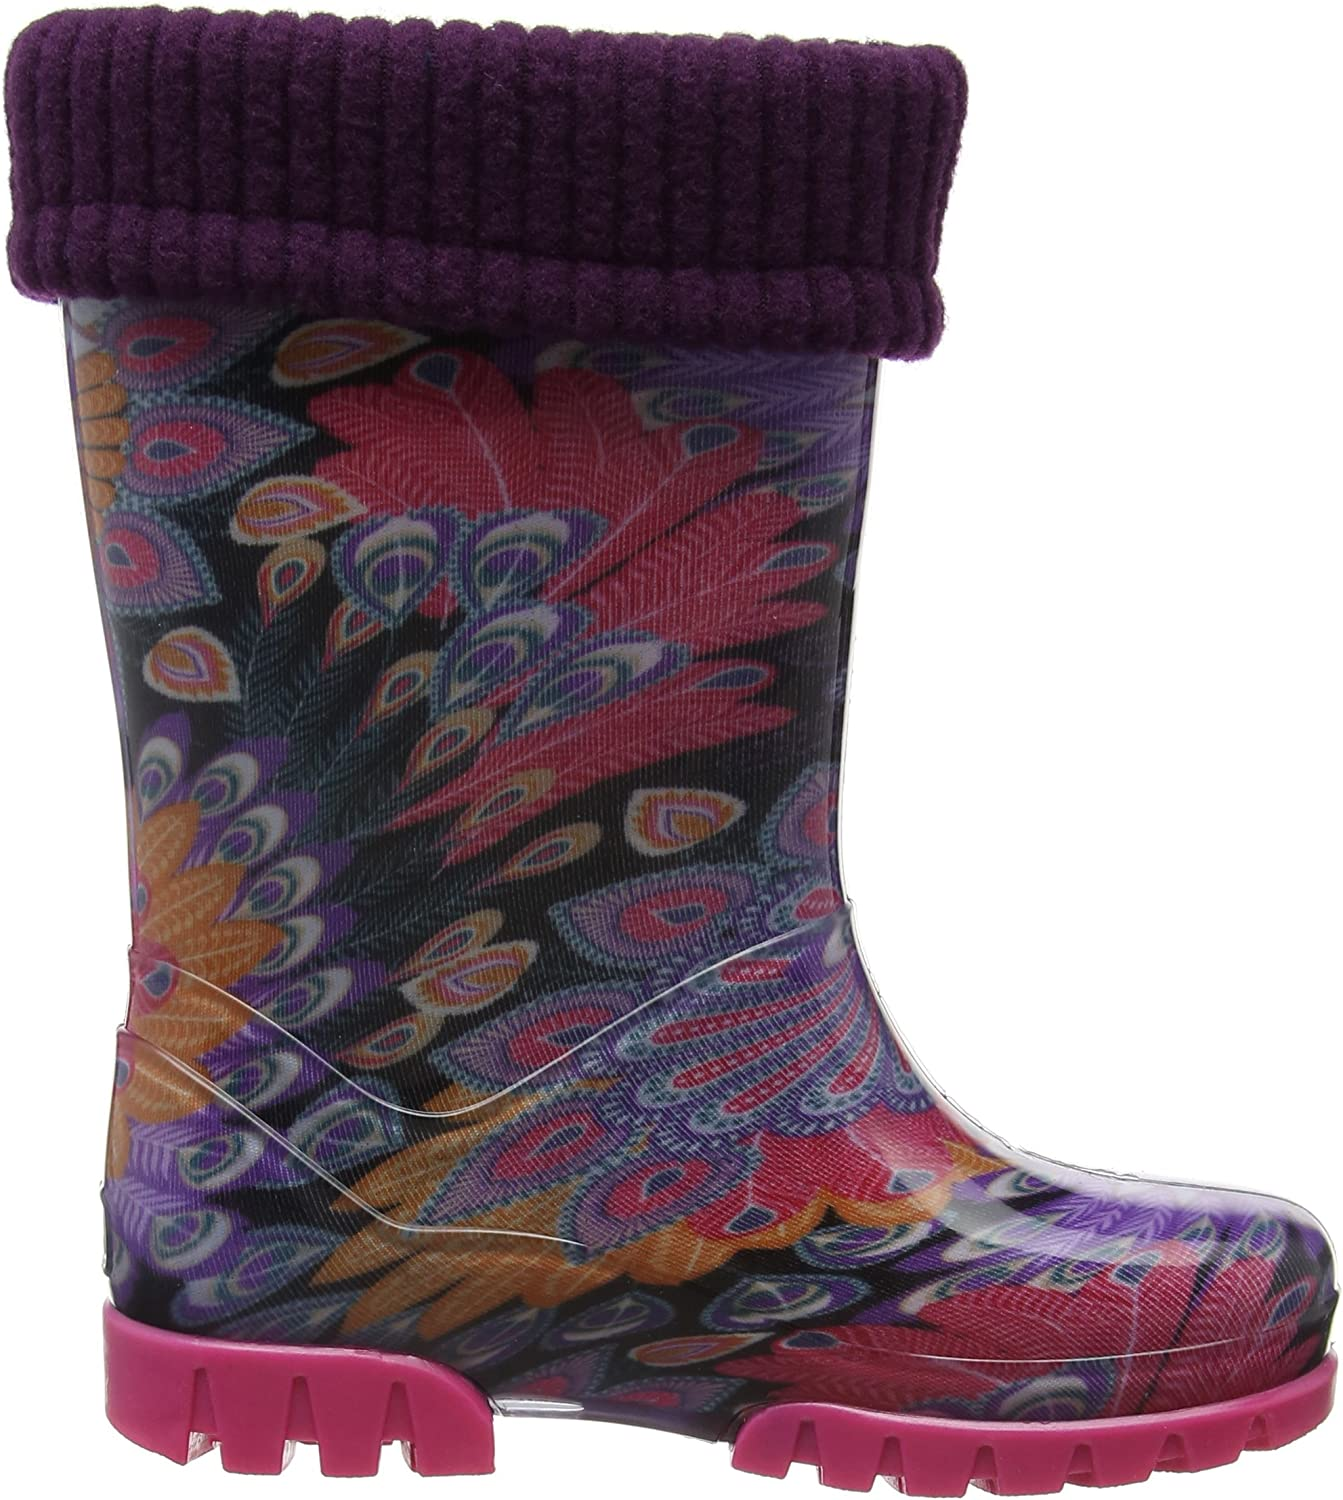 NEW!! PURPLE ALL SIZES Toughees Childrens Welly Boots